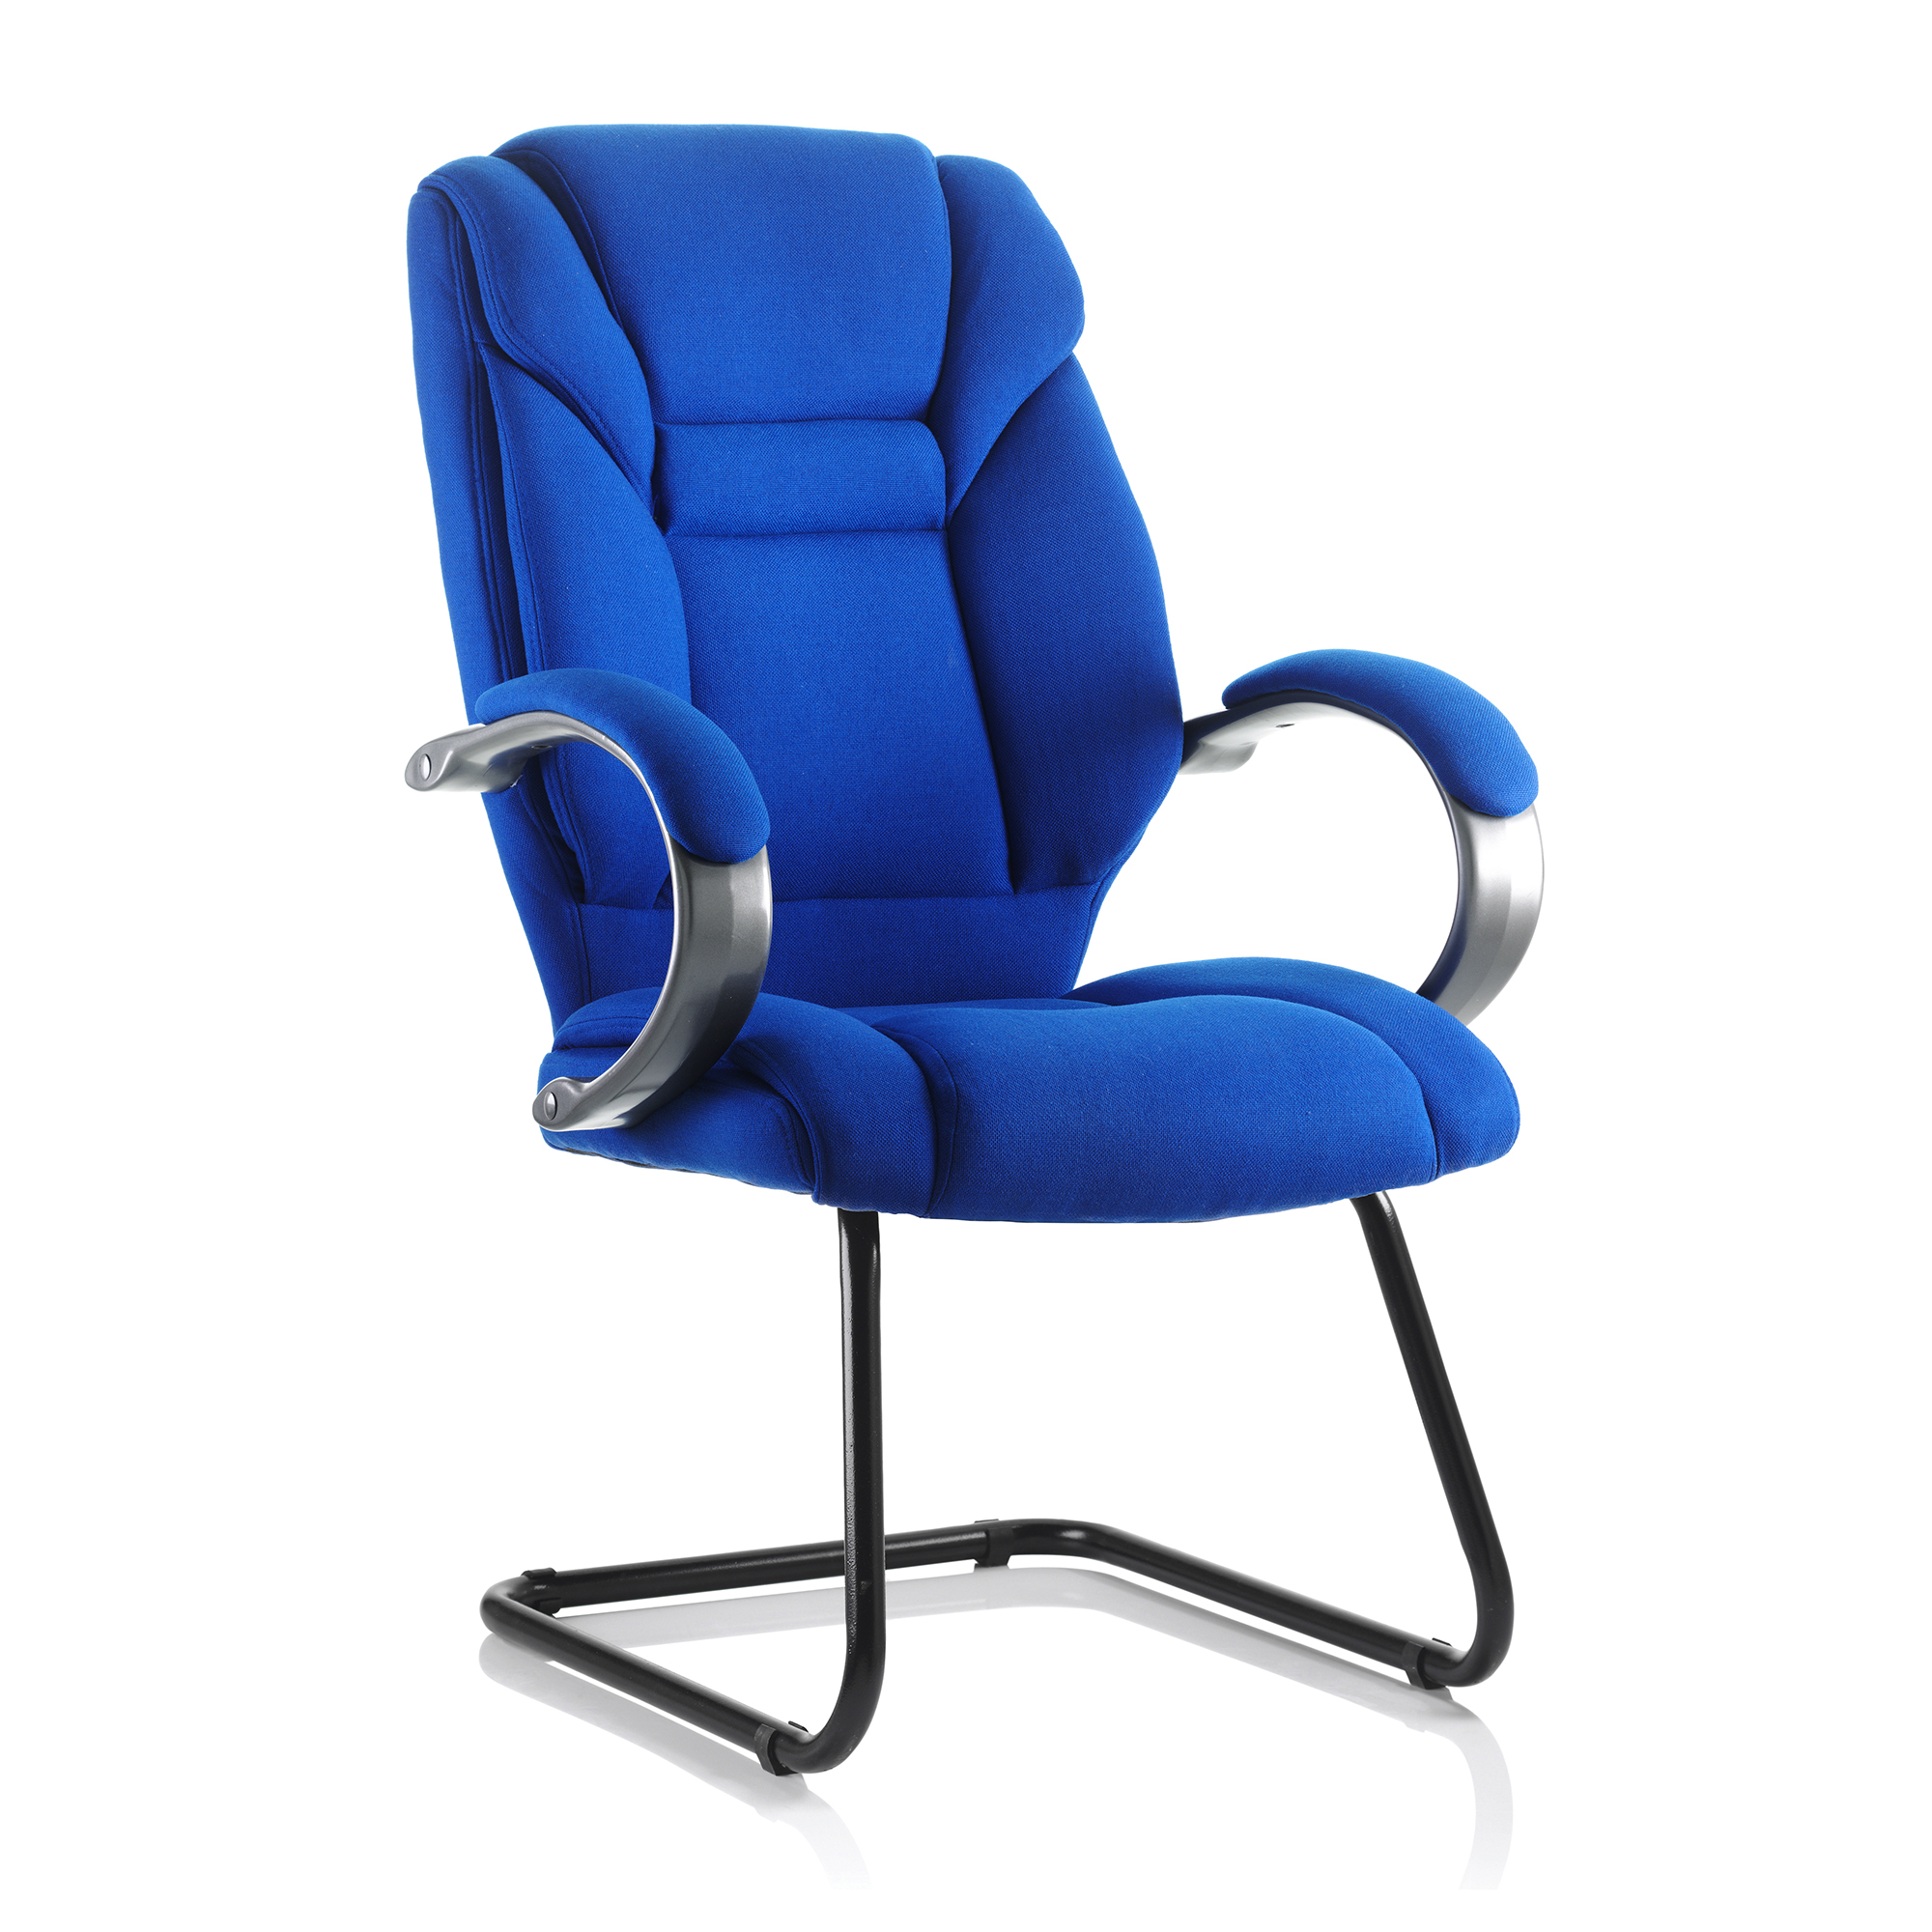 Guest seating Trexus Galloway Cantilever Chair With Arms Fabric Blue Ref KC0123